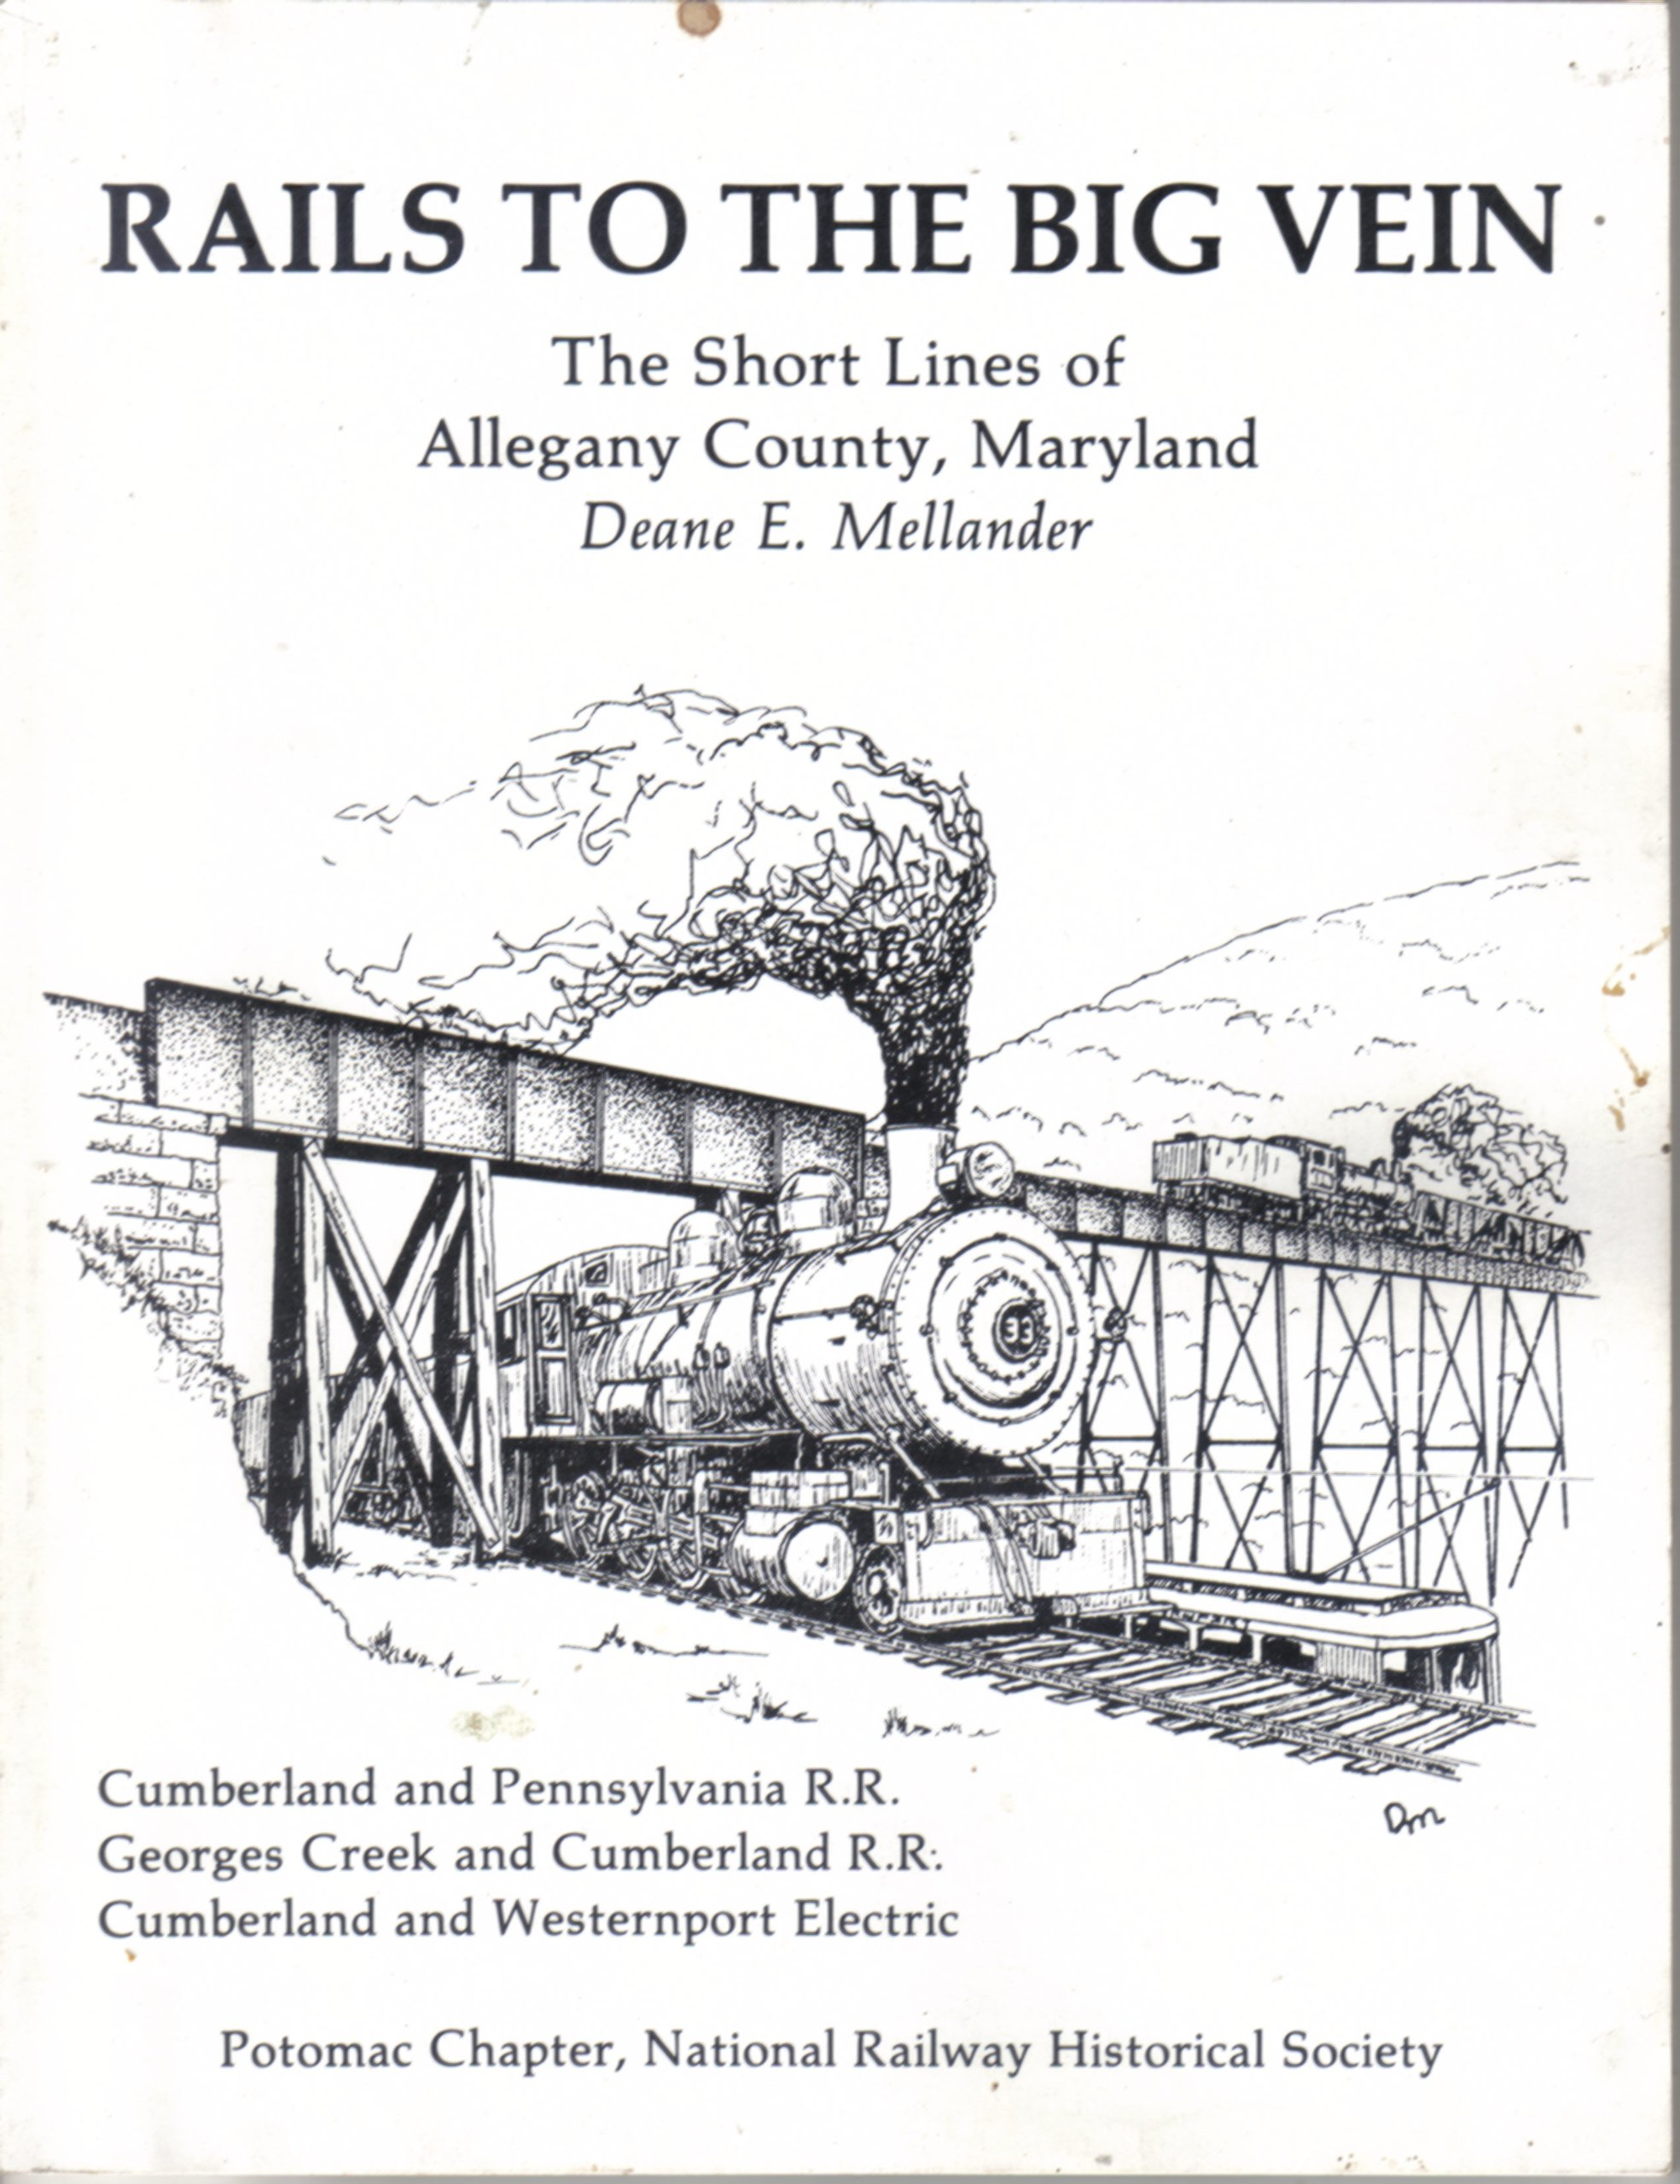 Rails to the big vein : the short lines of Allegany County, Maryland : the Cumberland and Pennsylvania RR, the Georges Creek and Cumberland RR, the Cumberland and Westernport Electric